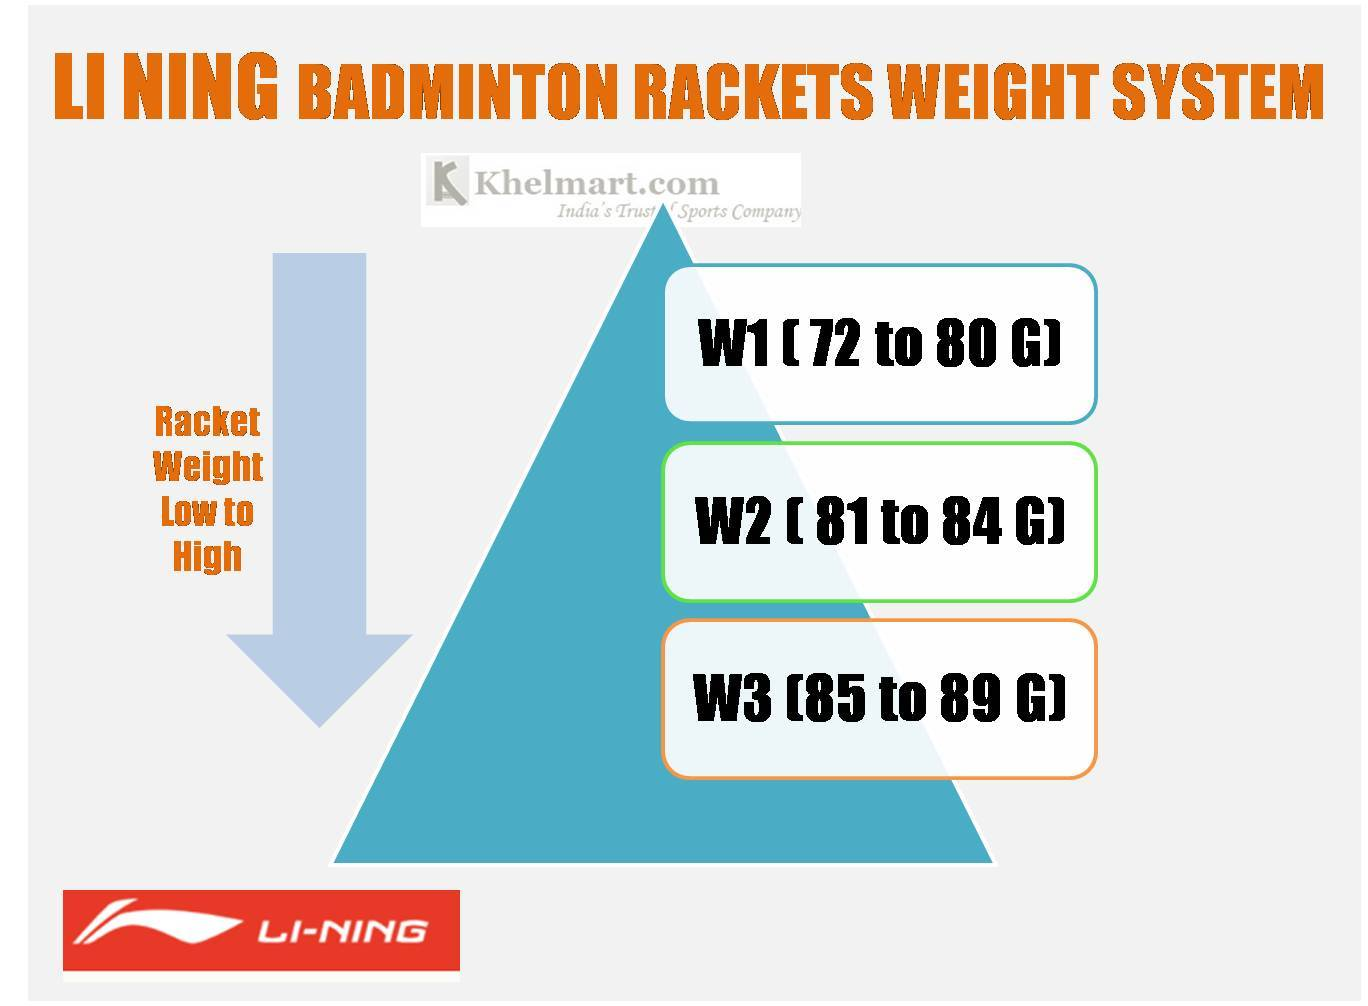 LiNing_Badminton_racket_Weight_Standard_Khelmart